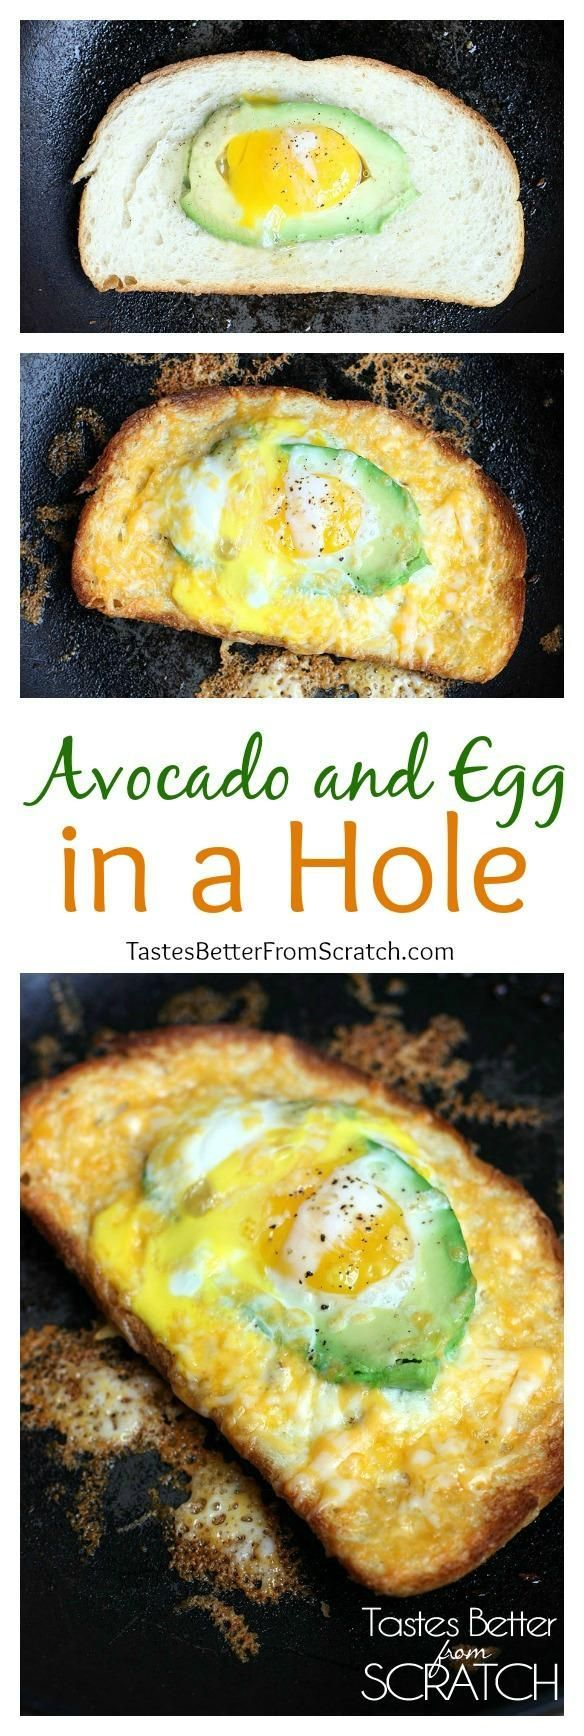 My families FAVORITE easy Breakfast! Avocado and Egg in a Hole from http://TastesBetterFromScratch.com